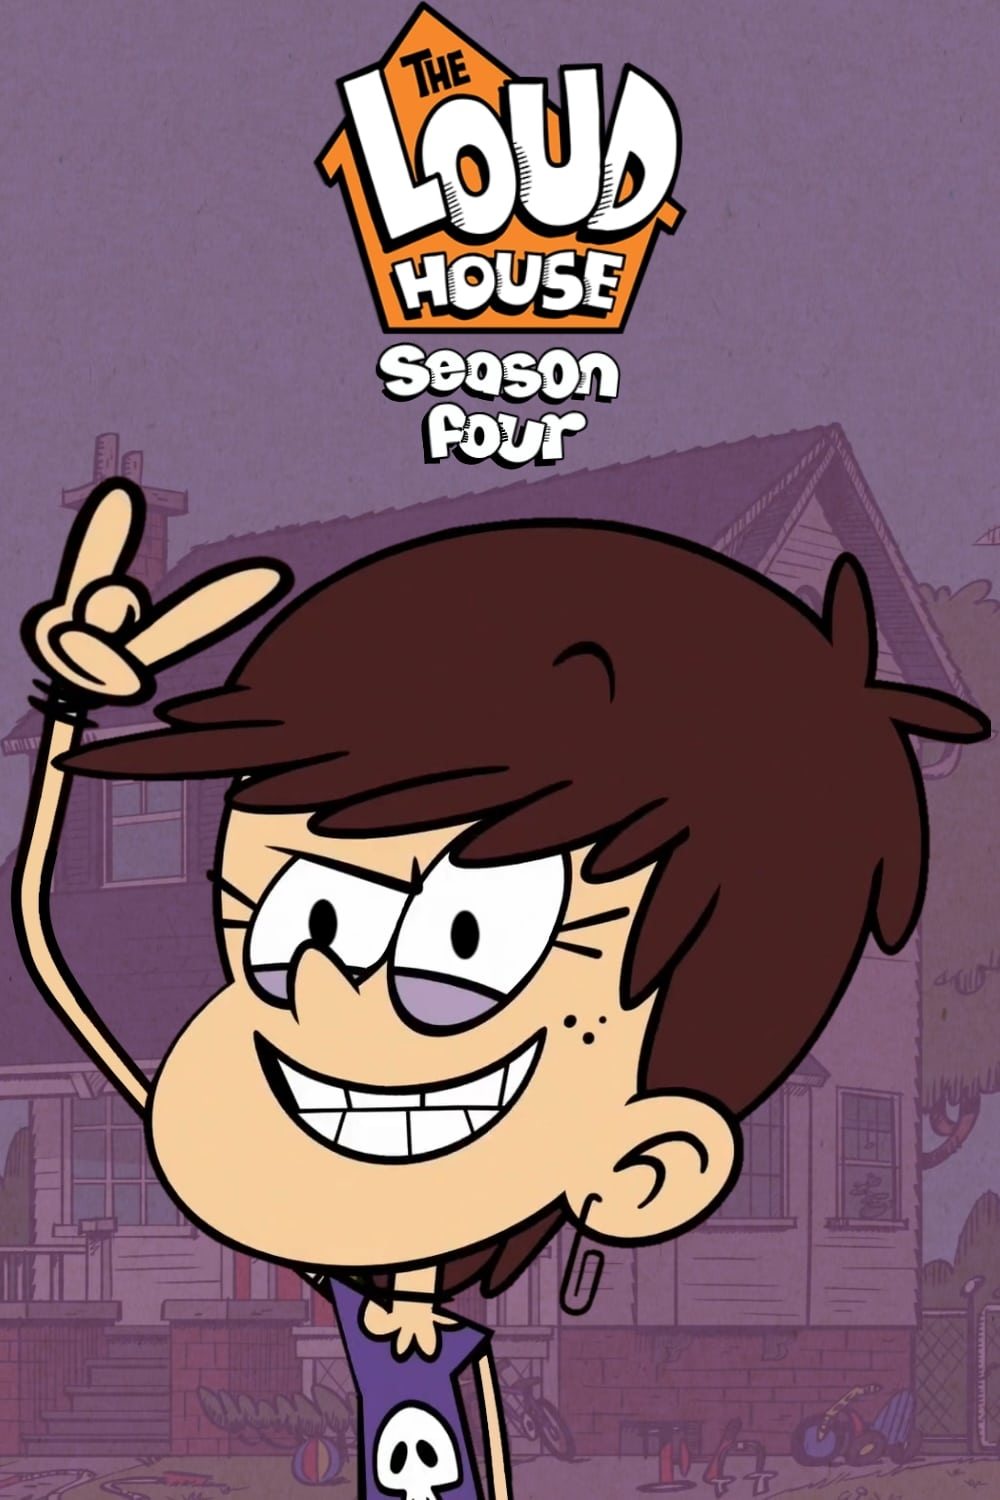 The Loud House Season 4